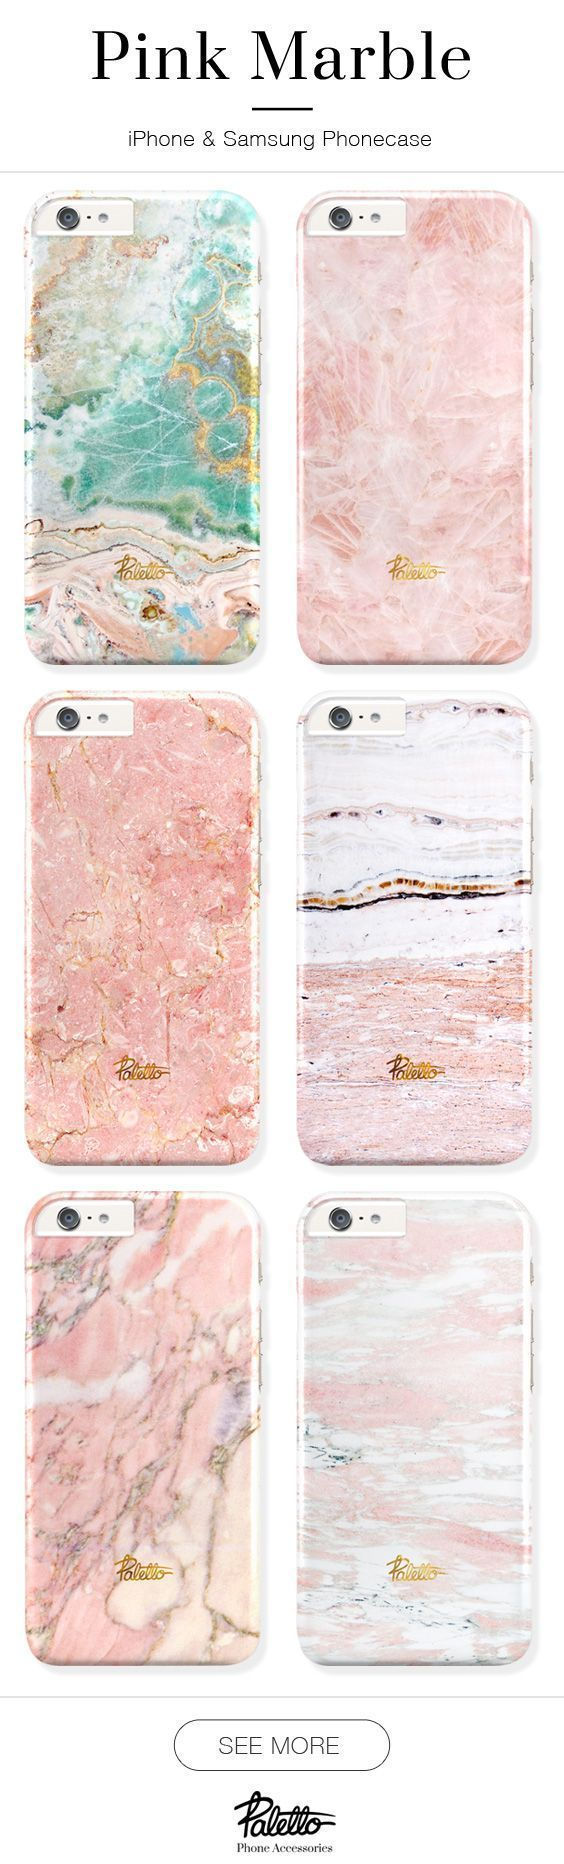 PINK marble phone case. Available for iPhone 6/6s, 6/6s plus, 5/5s/5c & Samsung galaxy S5, S6. Free shipping worldwide. #PhoneCase #Iphone6 #iphone6case,